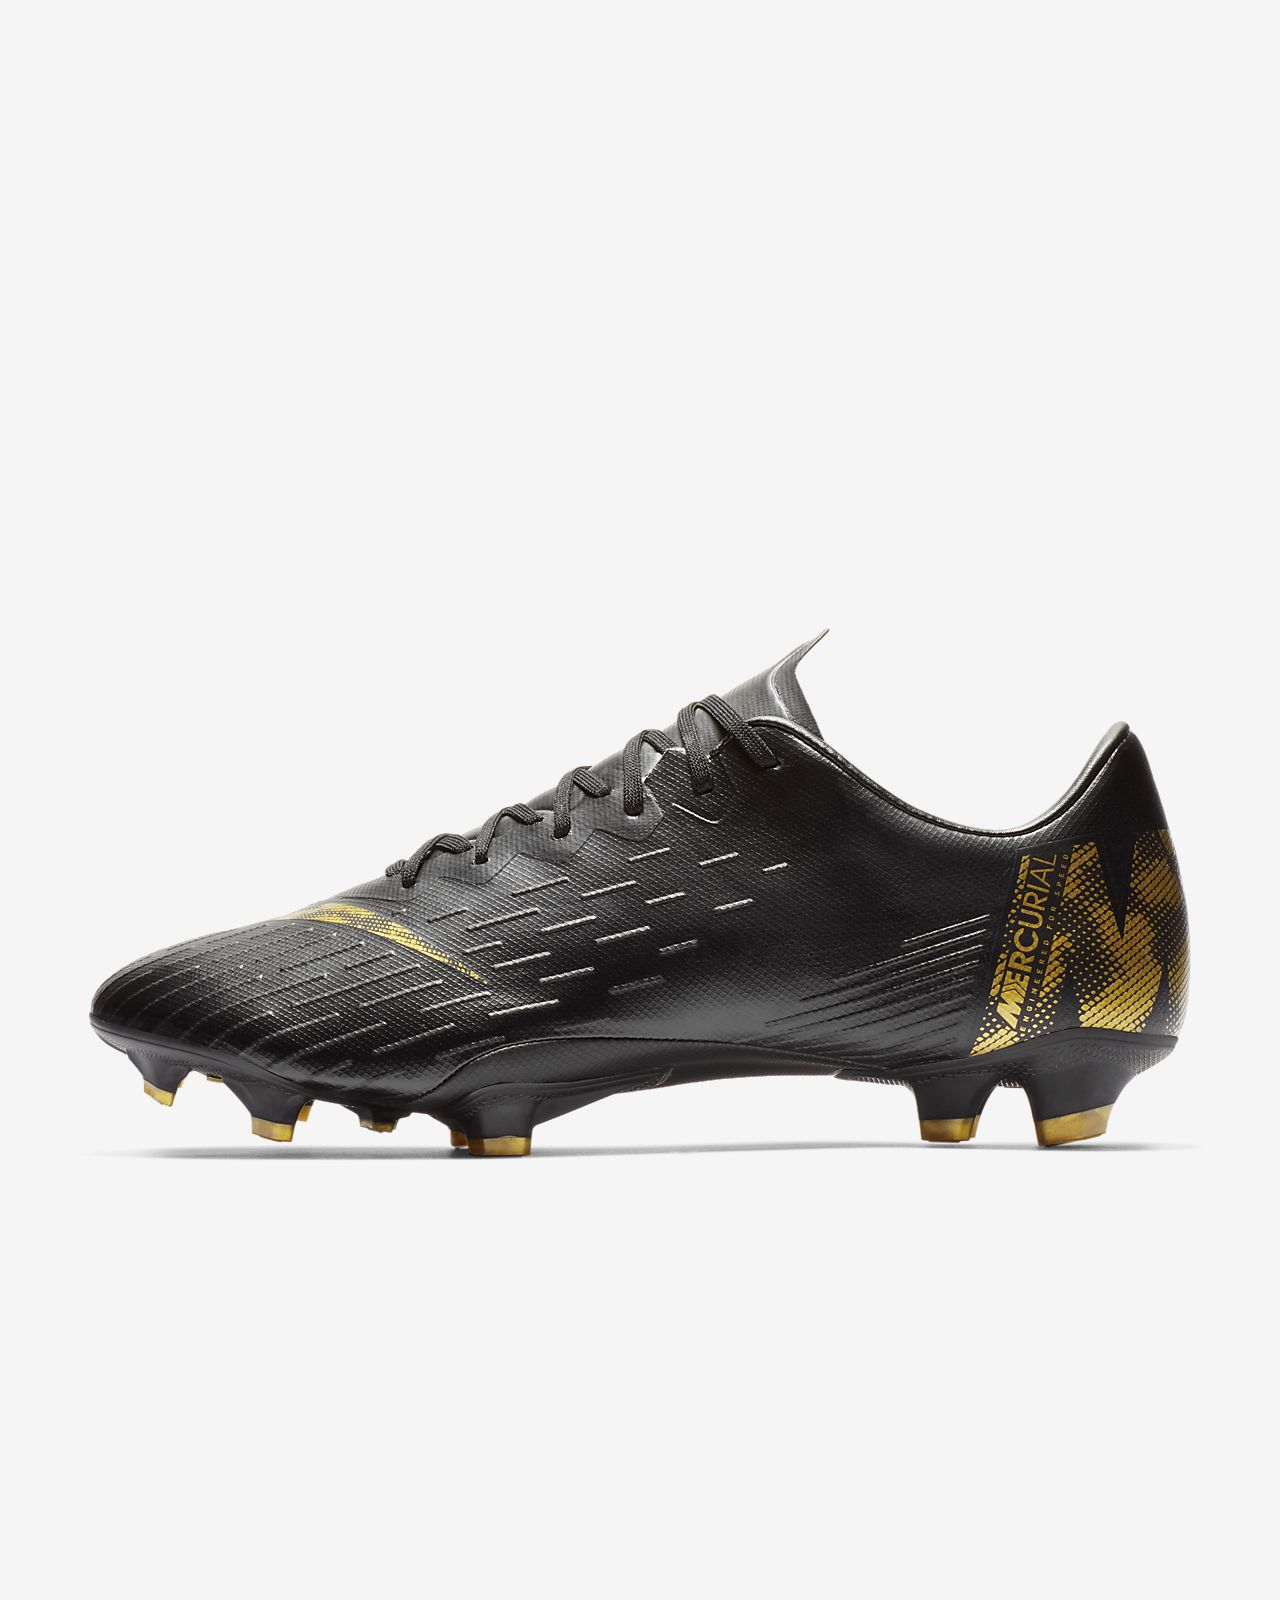 low priced 0dc47 b22c1 Nike Vapor 12 Pro FG